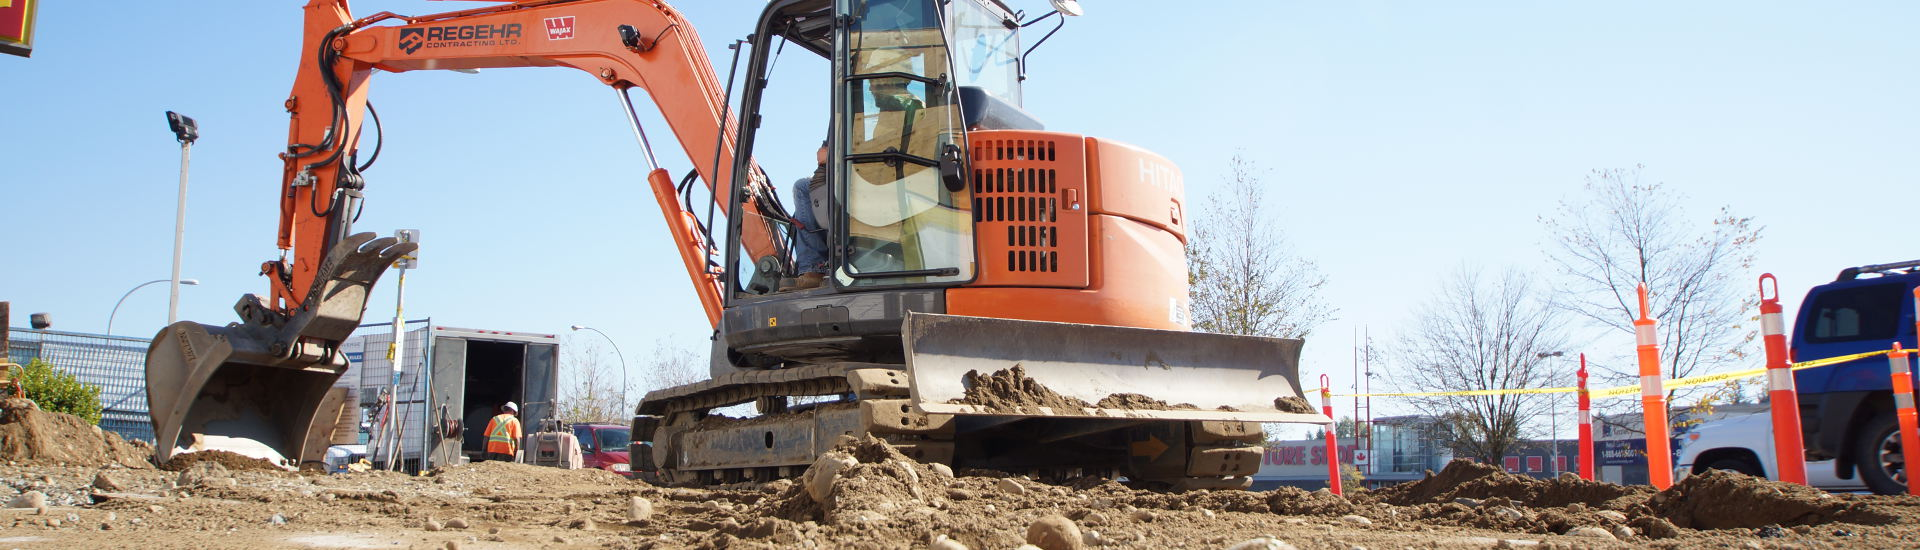 Mini excavator on commercial project